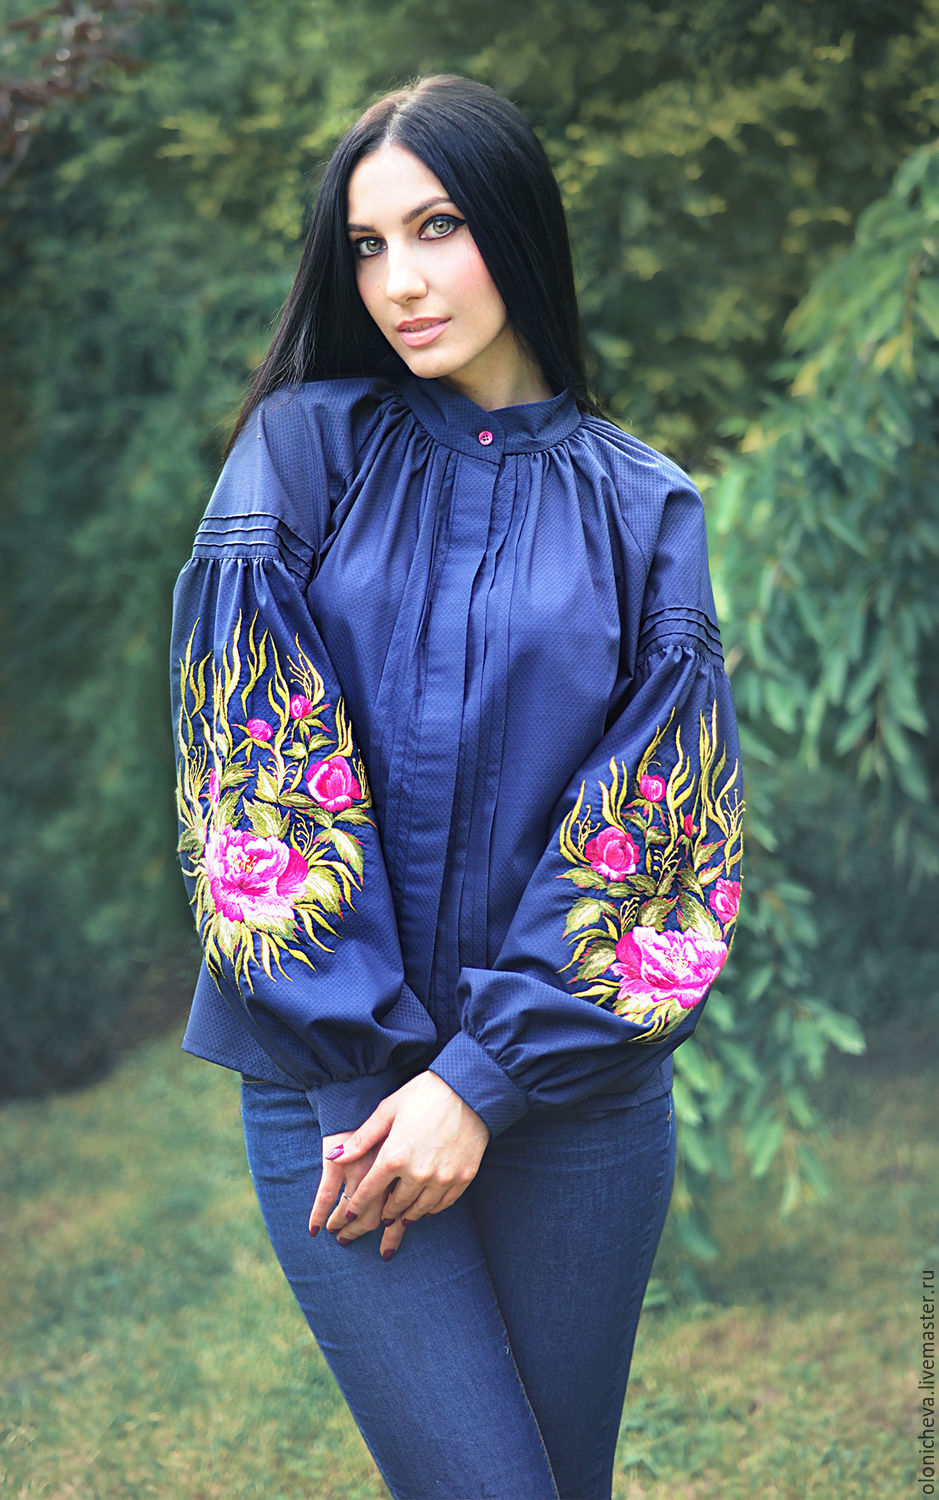 Elegant embroidered blouse 'Flower evening', Blouses, Vinnitsa,  Фото №1